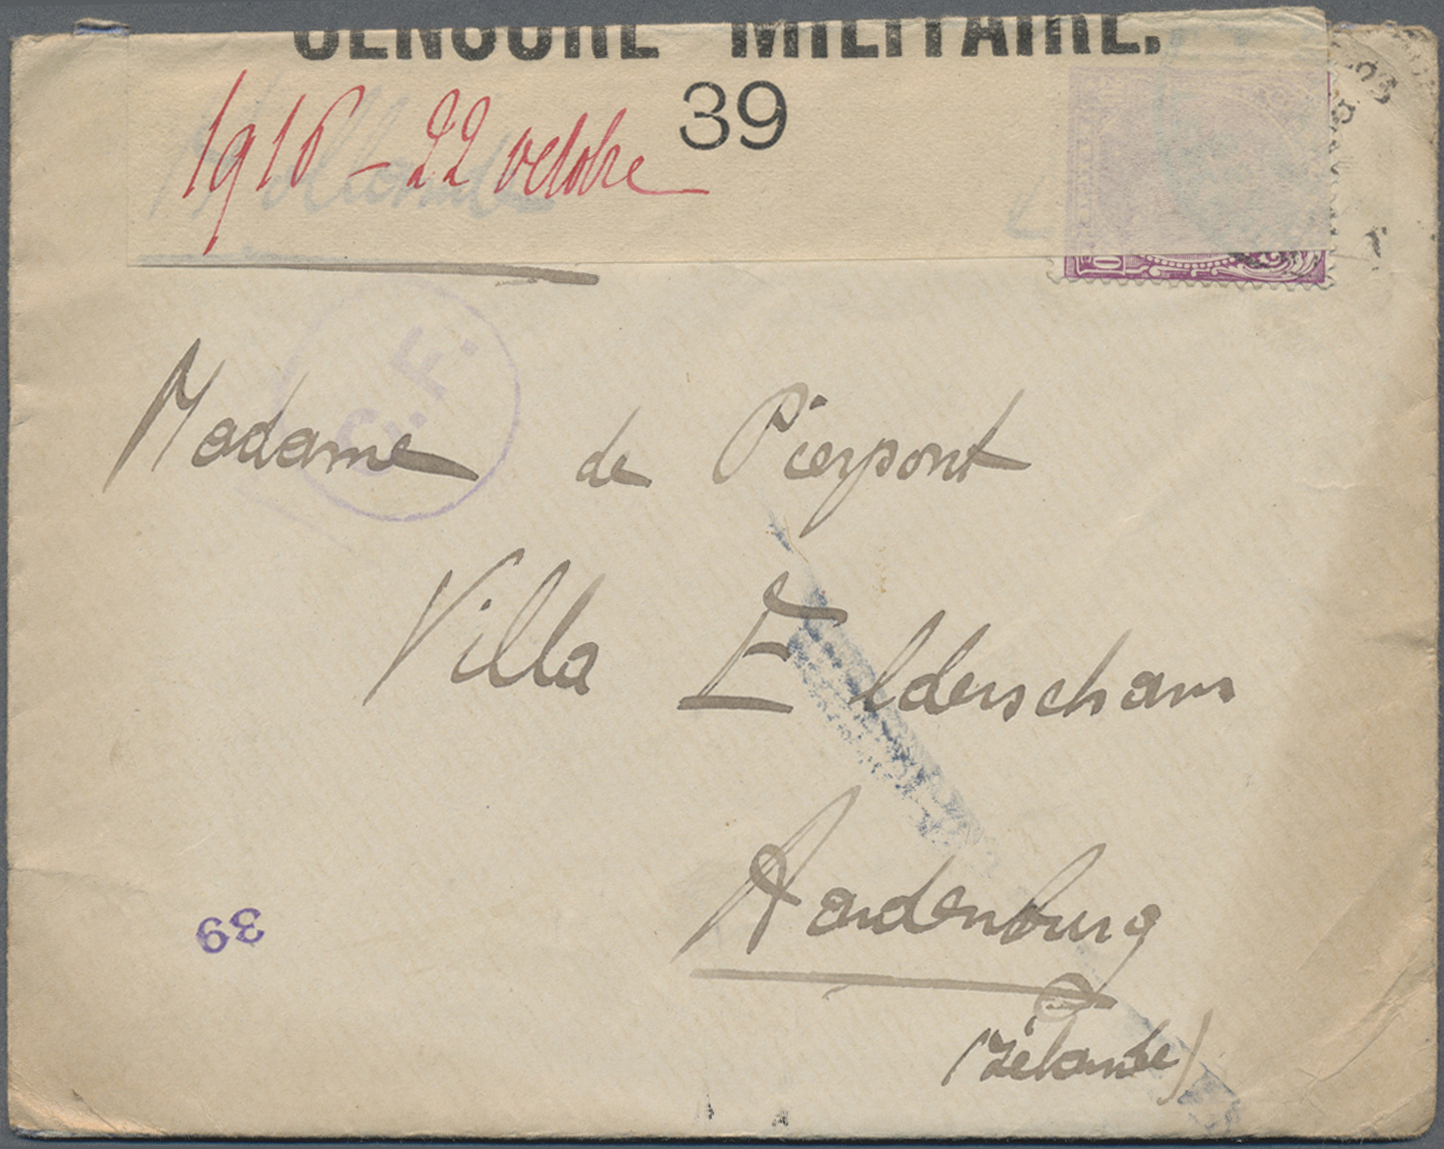 Lot 28848 - feldpost 1. weltkrieg  -  Auktionshaus Christoph Gärtner GmbH & Co. KG Sale #46 Gollcetions Germany - including the suplement